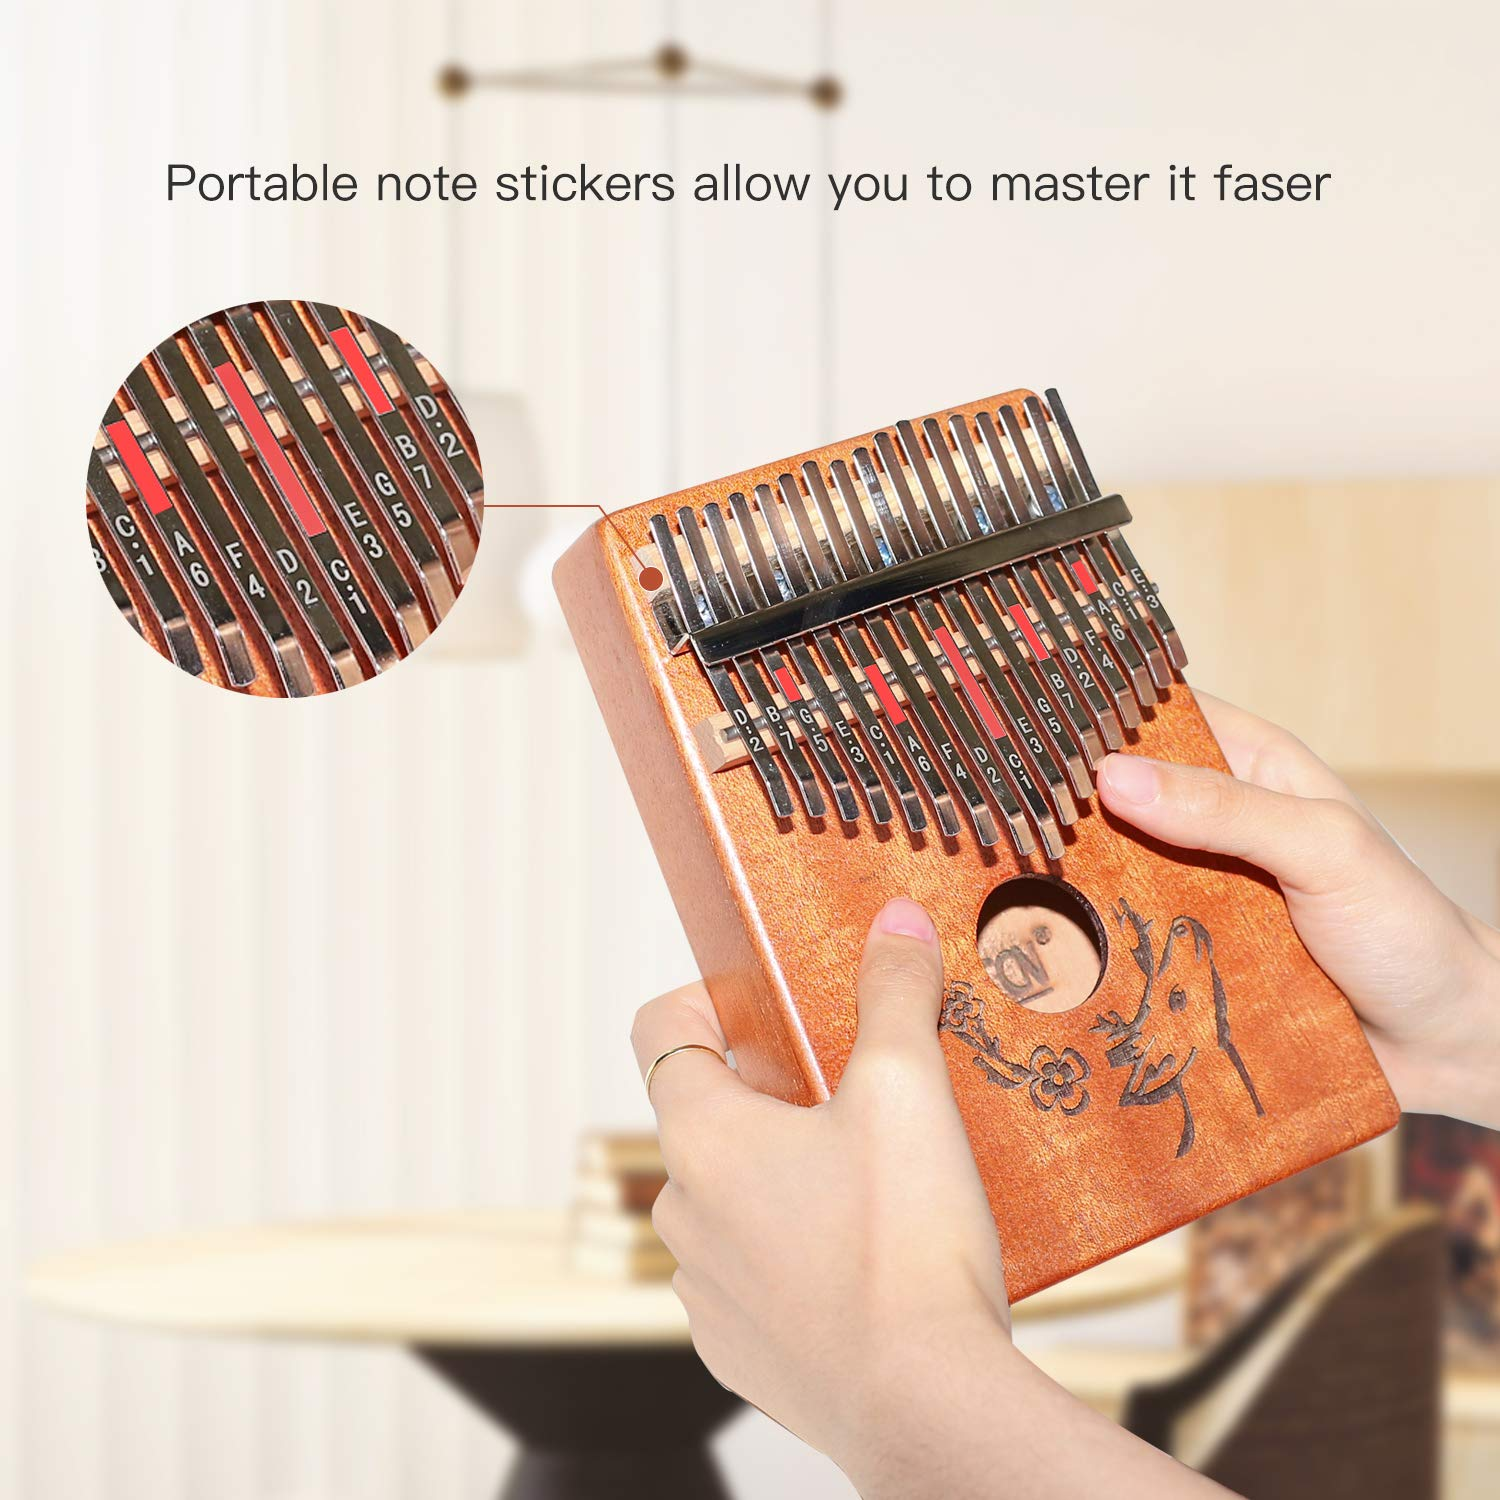 AECCN Kalimba 17 Keys Thumb Piano - Pocket Size With Study Instruction and Tune-Hammer & Simple Sheet Music, Christmas Day Birthday Gifts Idea for Kids Adults Beginners, Professionals (Deer) by AECCN (Image #5)